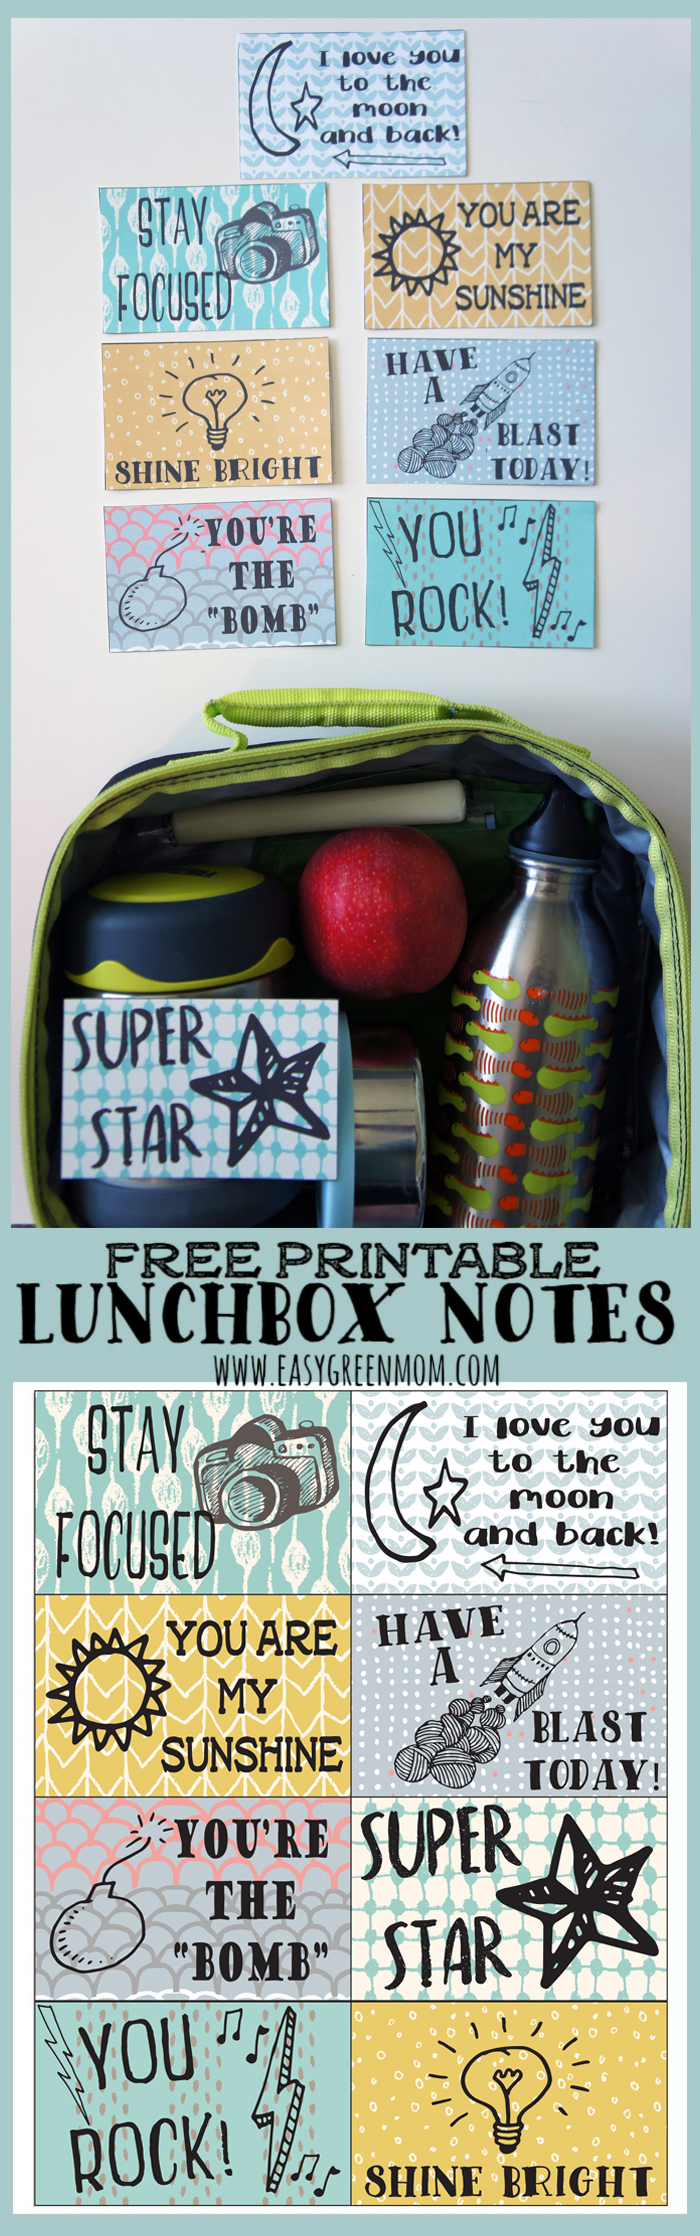 School lunchbox Notes Free Printable from rays of bliss.